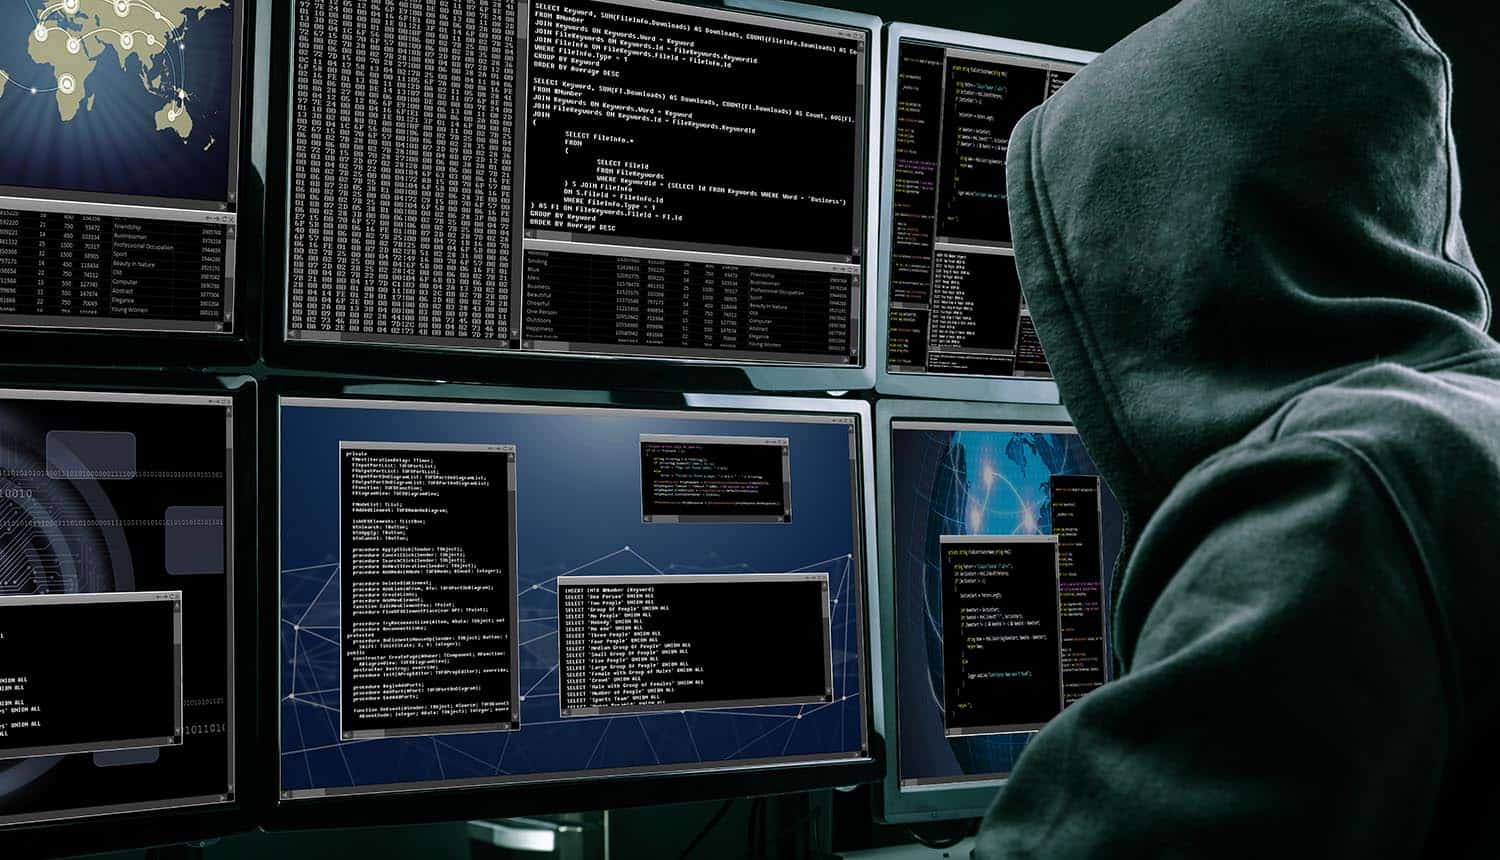 Rear view of a hacker using multiple computers for identity theft and cybercrime